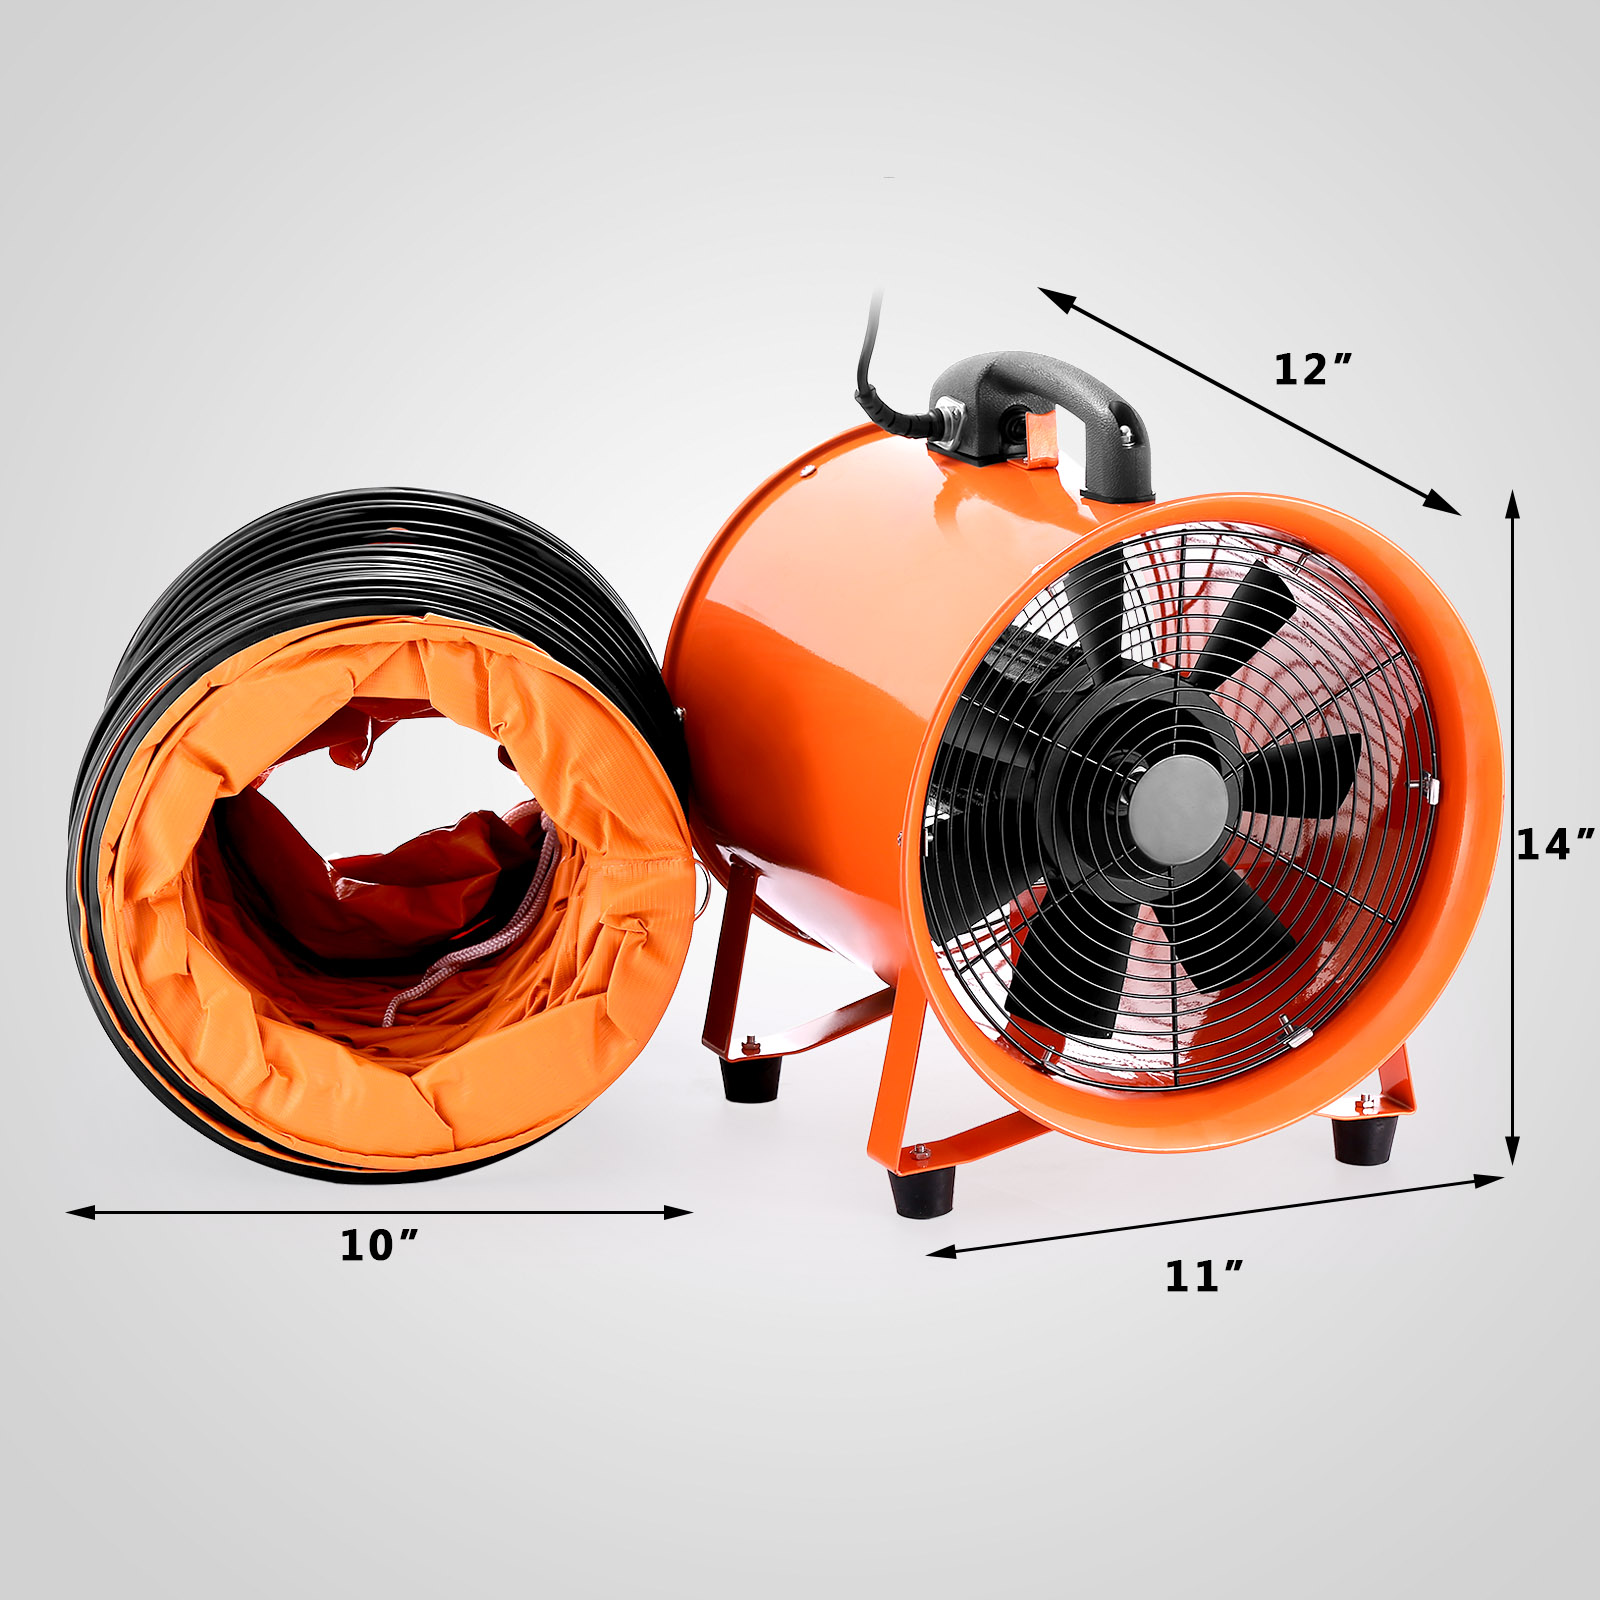 portable ventilation fan for kitchen height of bar stools counter 10 quot industrial ventilator blower duct hose